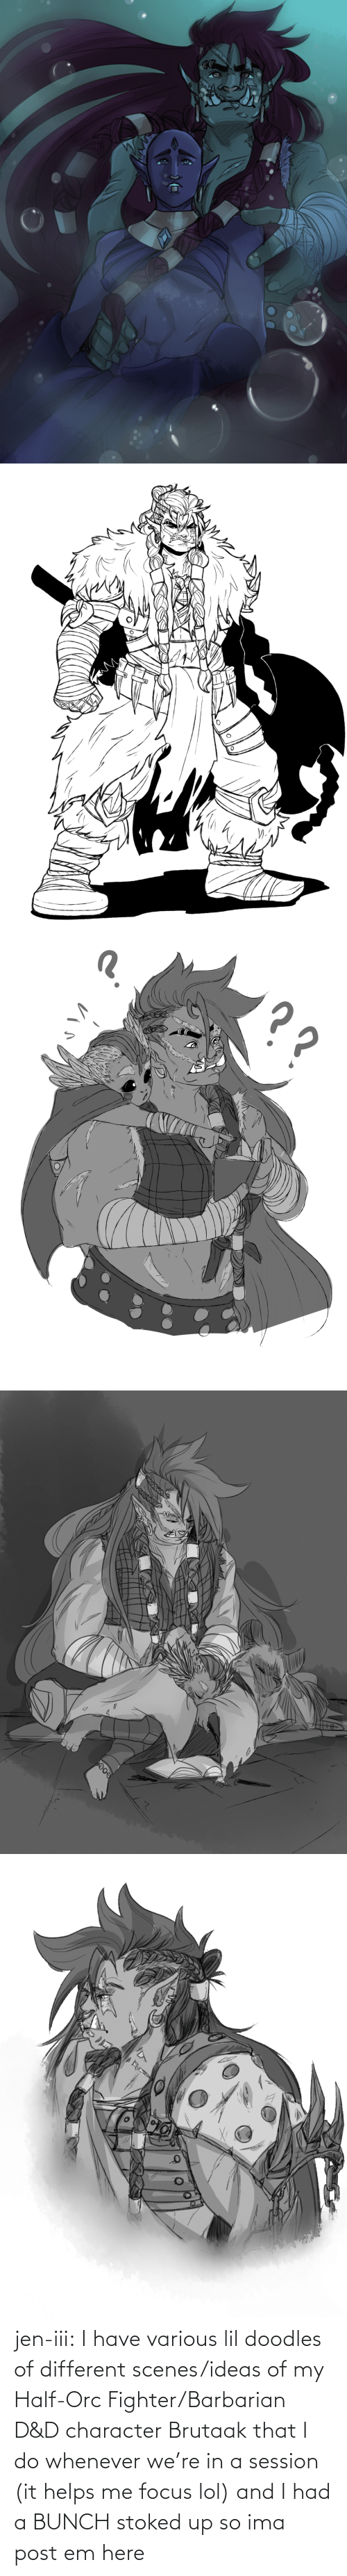 ima: jen-iii:  I have various lil doodles of different scenes/ideas of my Half-Orc Fighter/Barbarian D&D character Brutaak that I do whenever we're in a session (it helps me focus lol) and I had a BUNCH stoked up so ima post em here